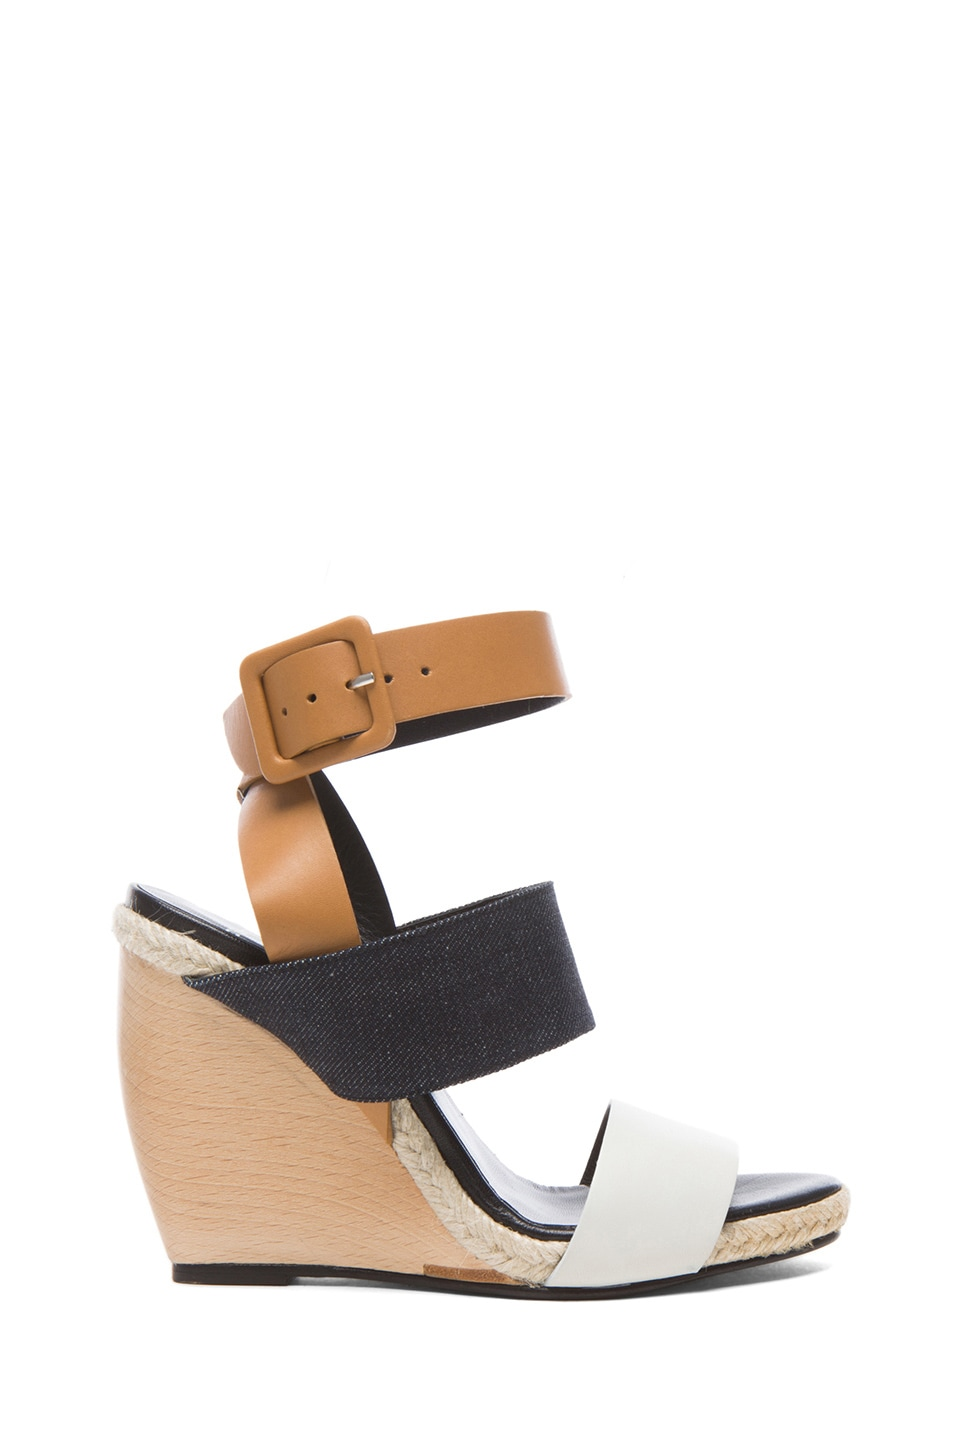 Image 1 of Pierre Hardy Strap Calfskin Leather & Denim Wedge Sandals in Jeans & Brown